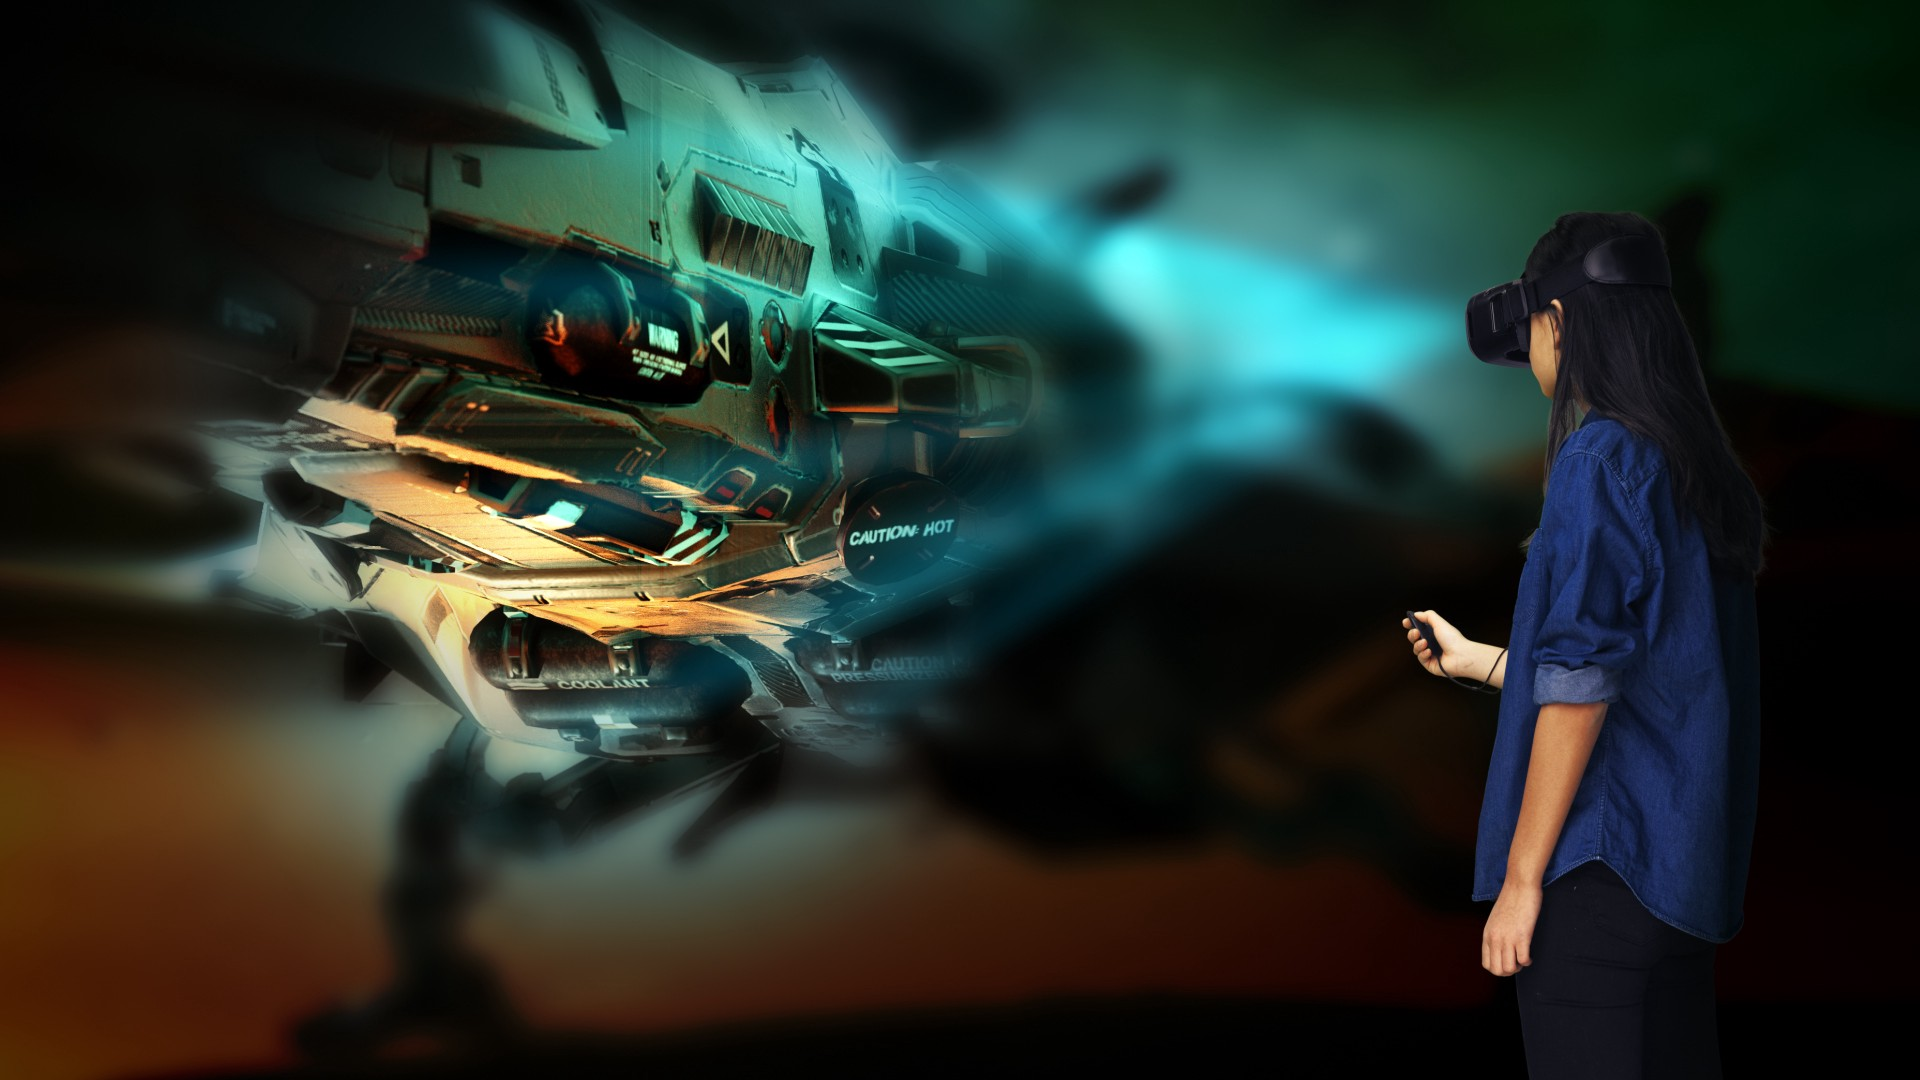 5 VR Technologies We Think Are Pretty Cool - Official Eye Tracking Blog